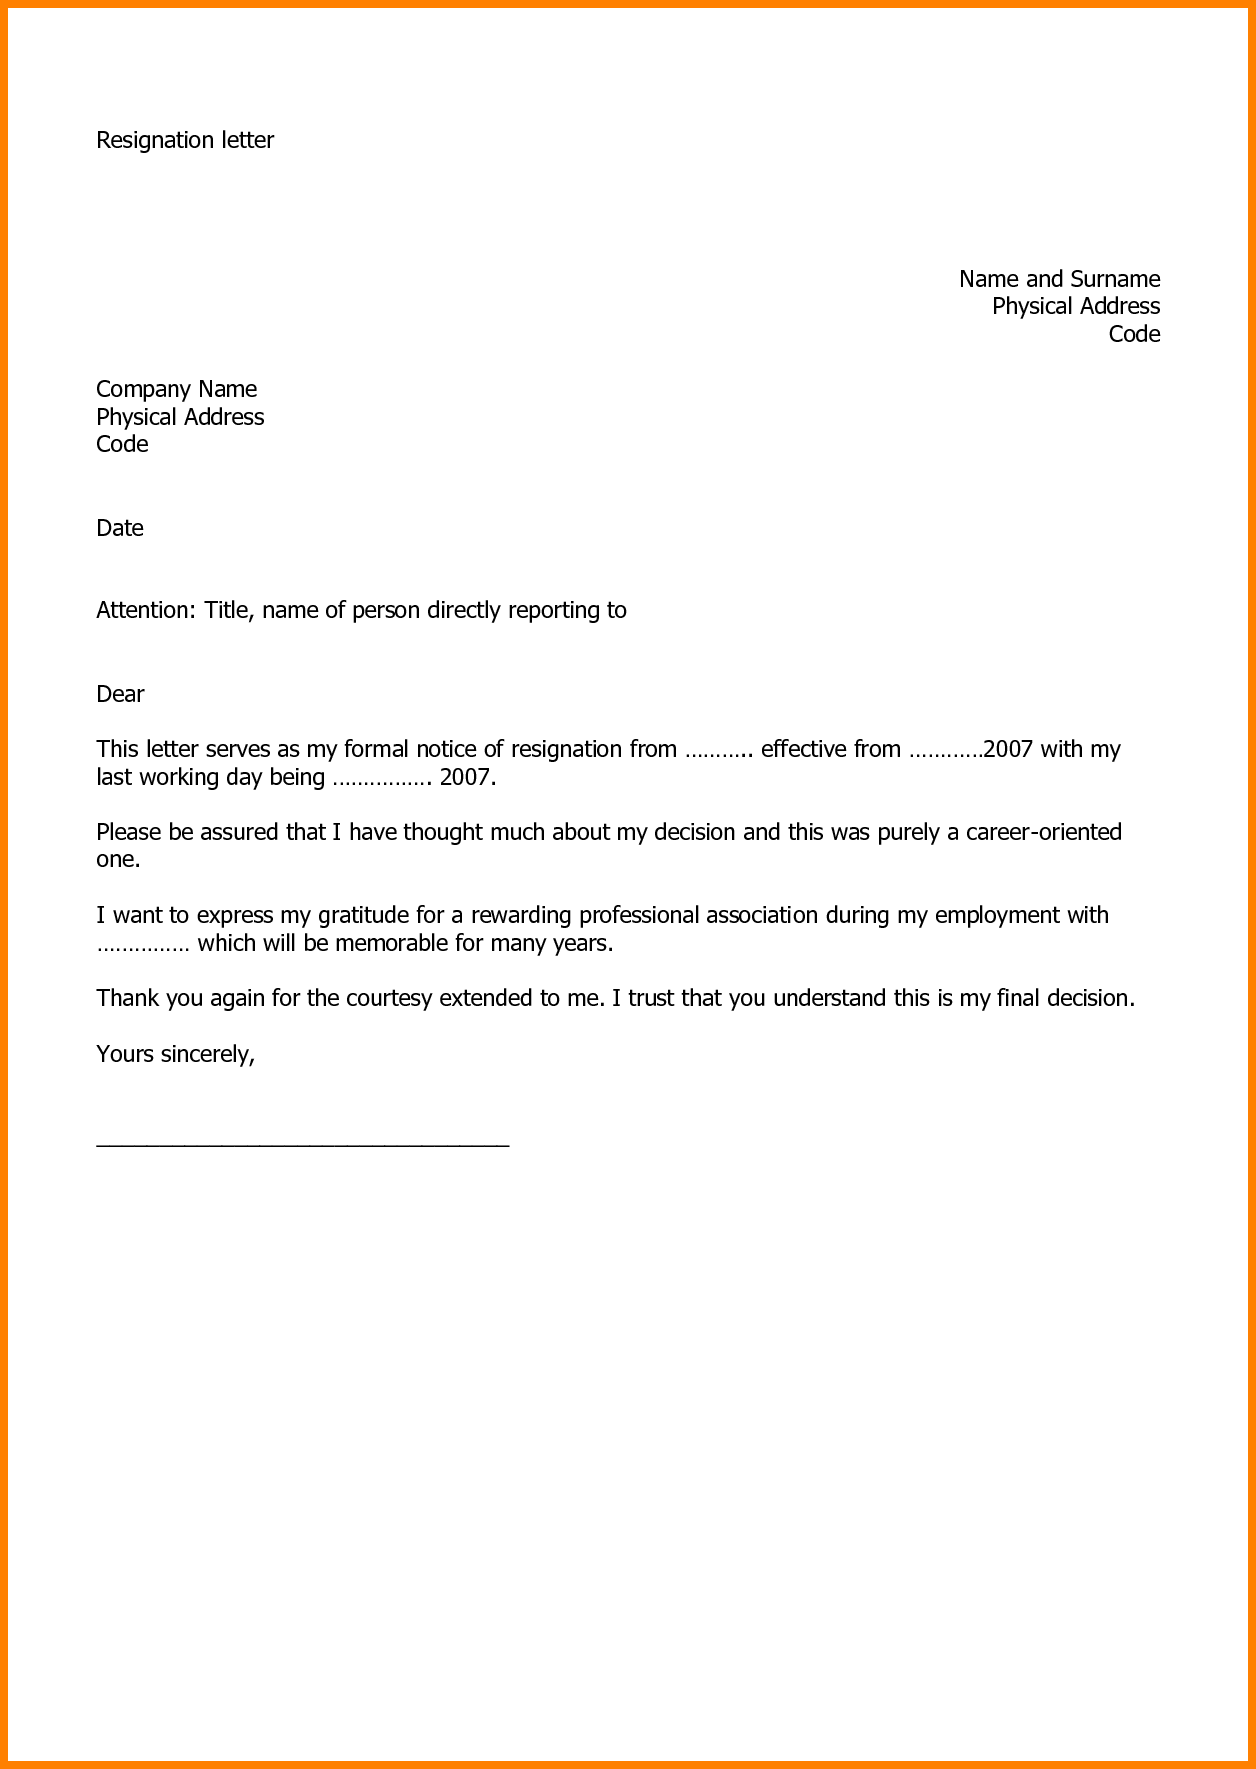 letter format for job resignation resignation letter example png